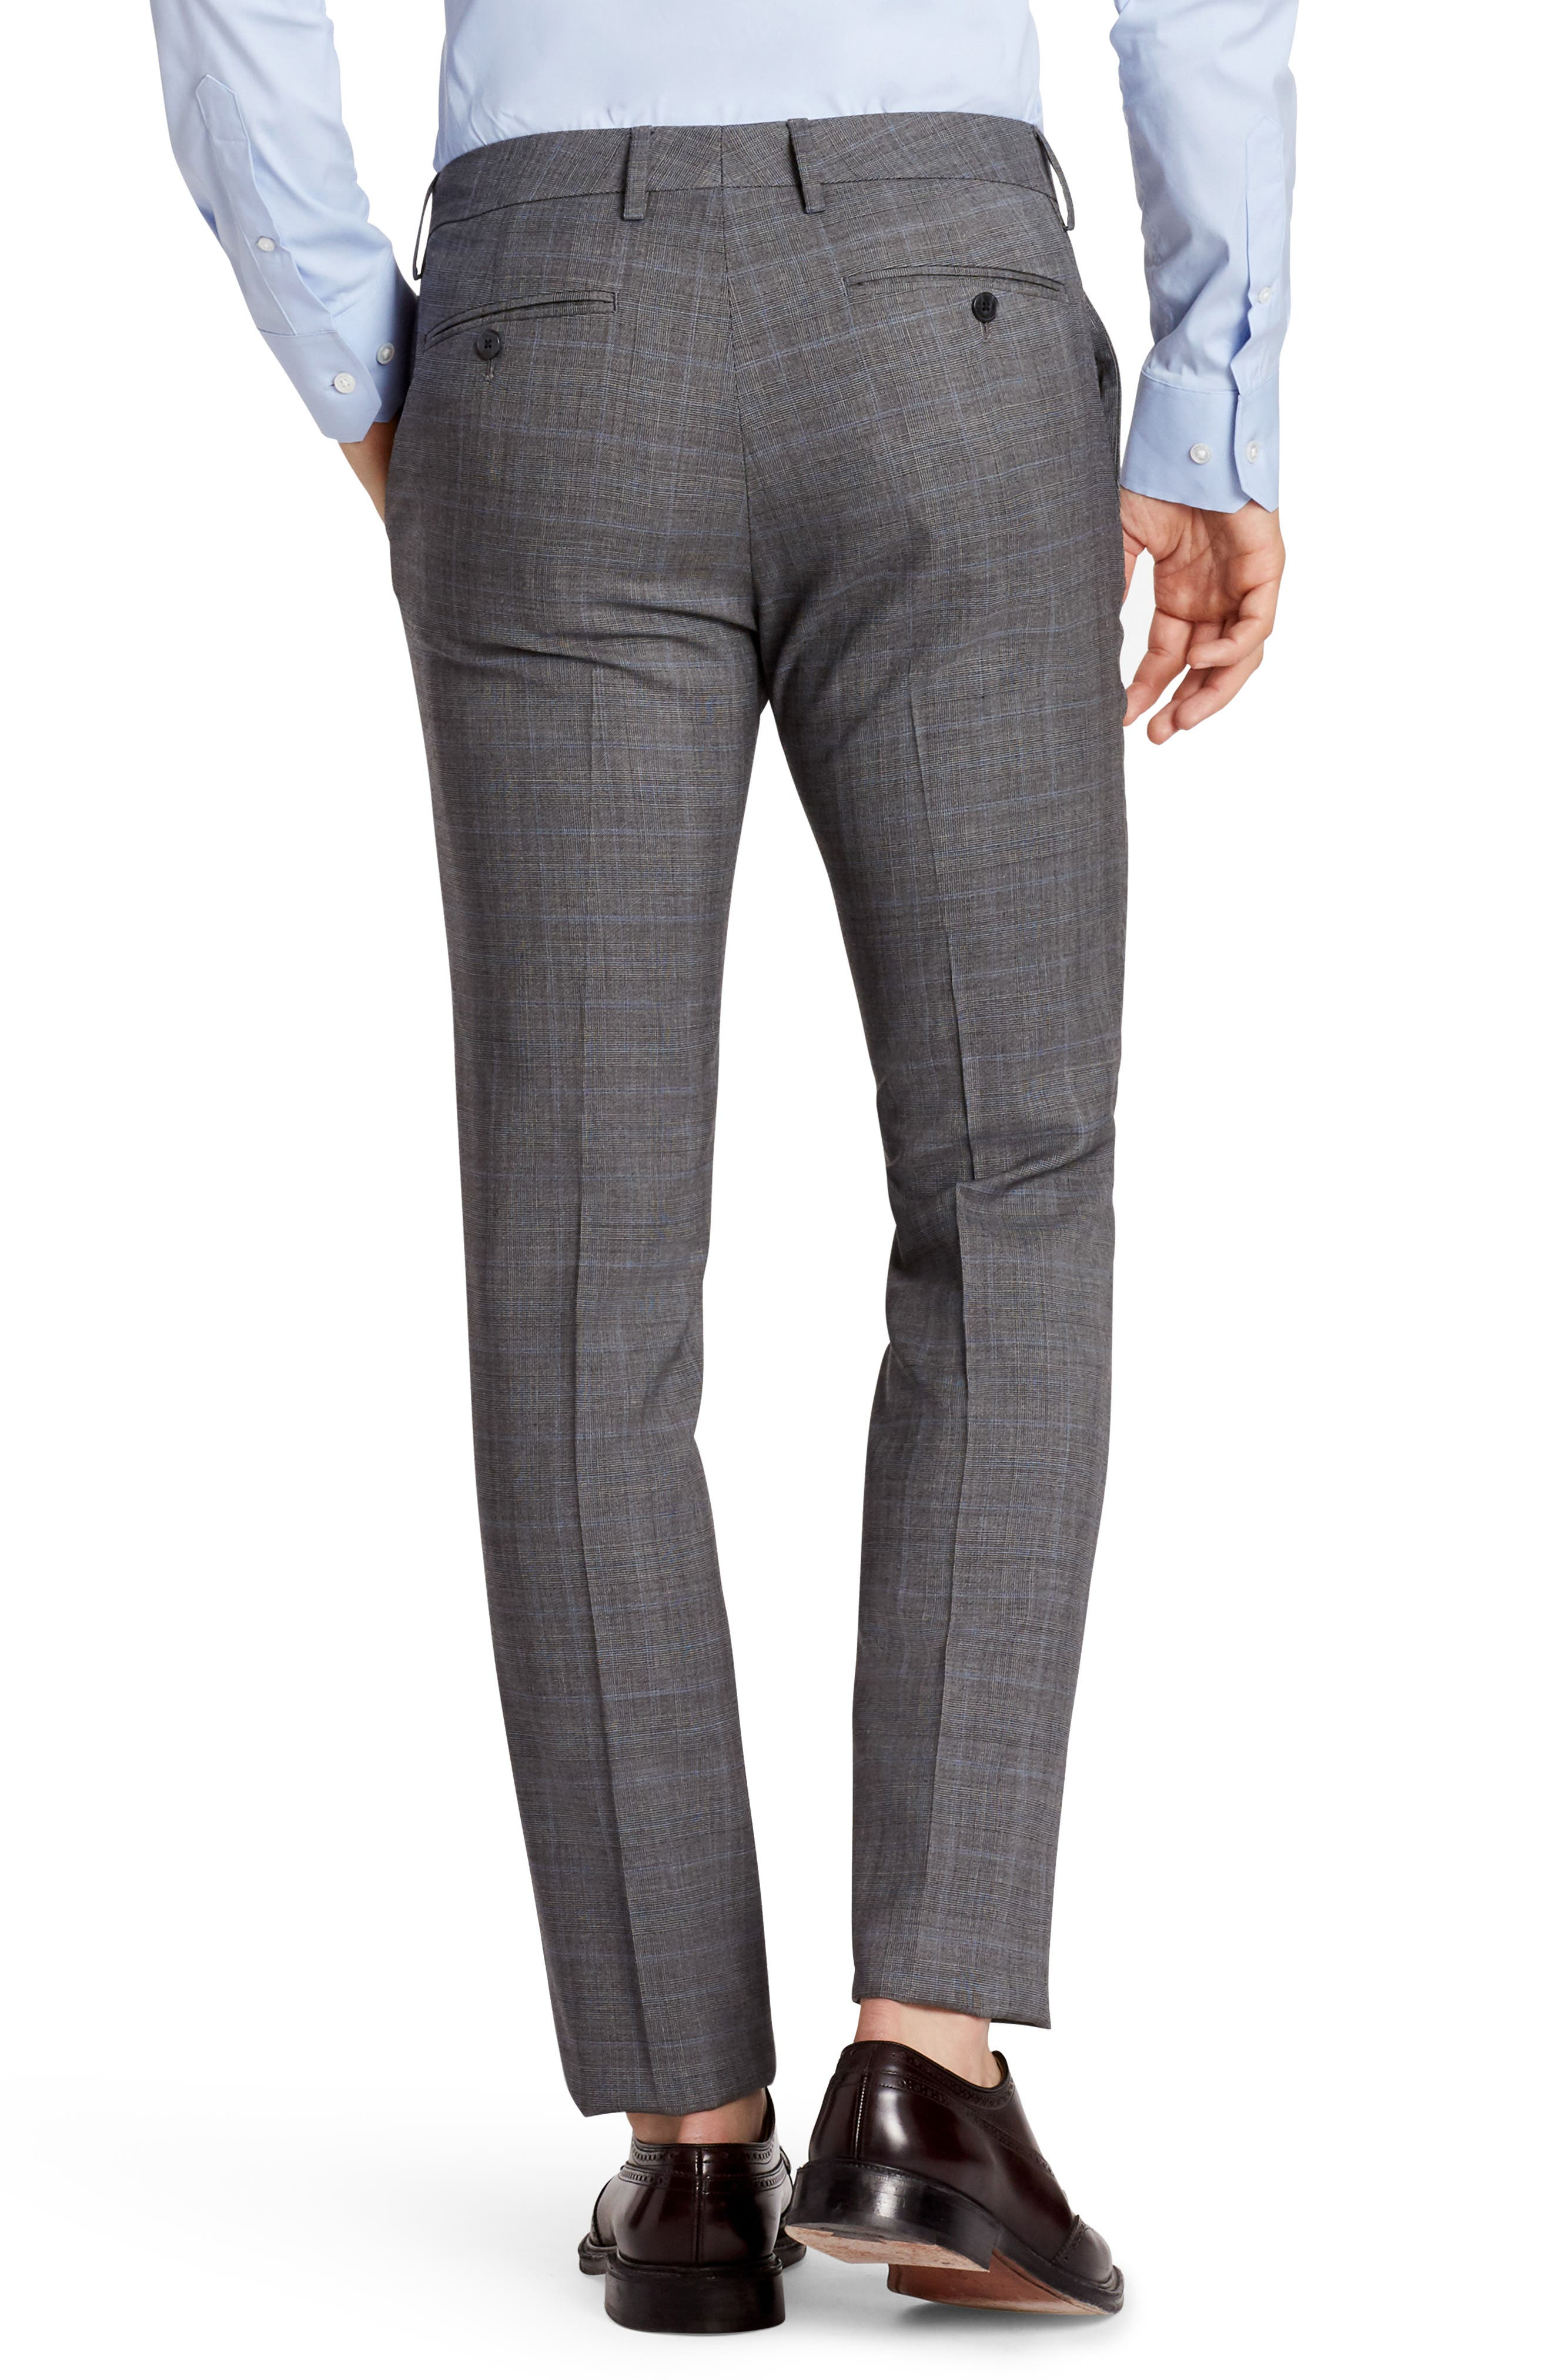 Jetsetter Flat Front Plaid Stretch Wool Trousers,                             Alternate thumbnail 2, color,                             Mid Grey Glen Plaid